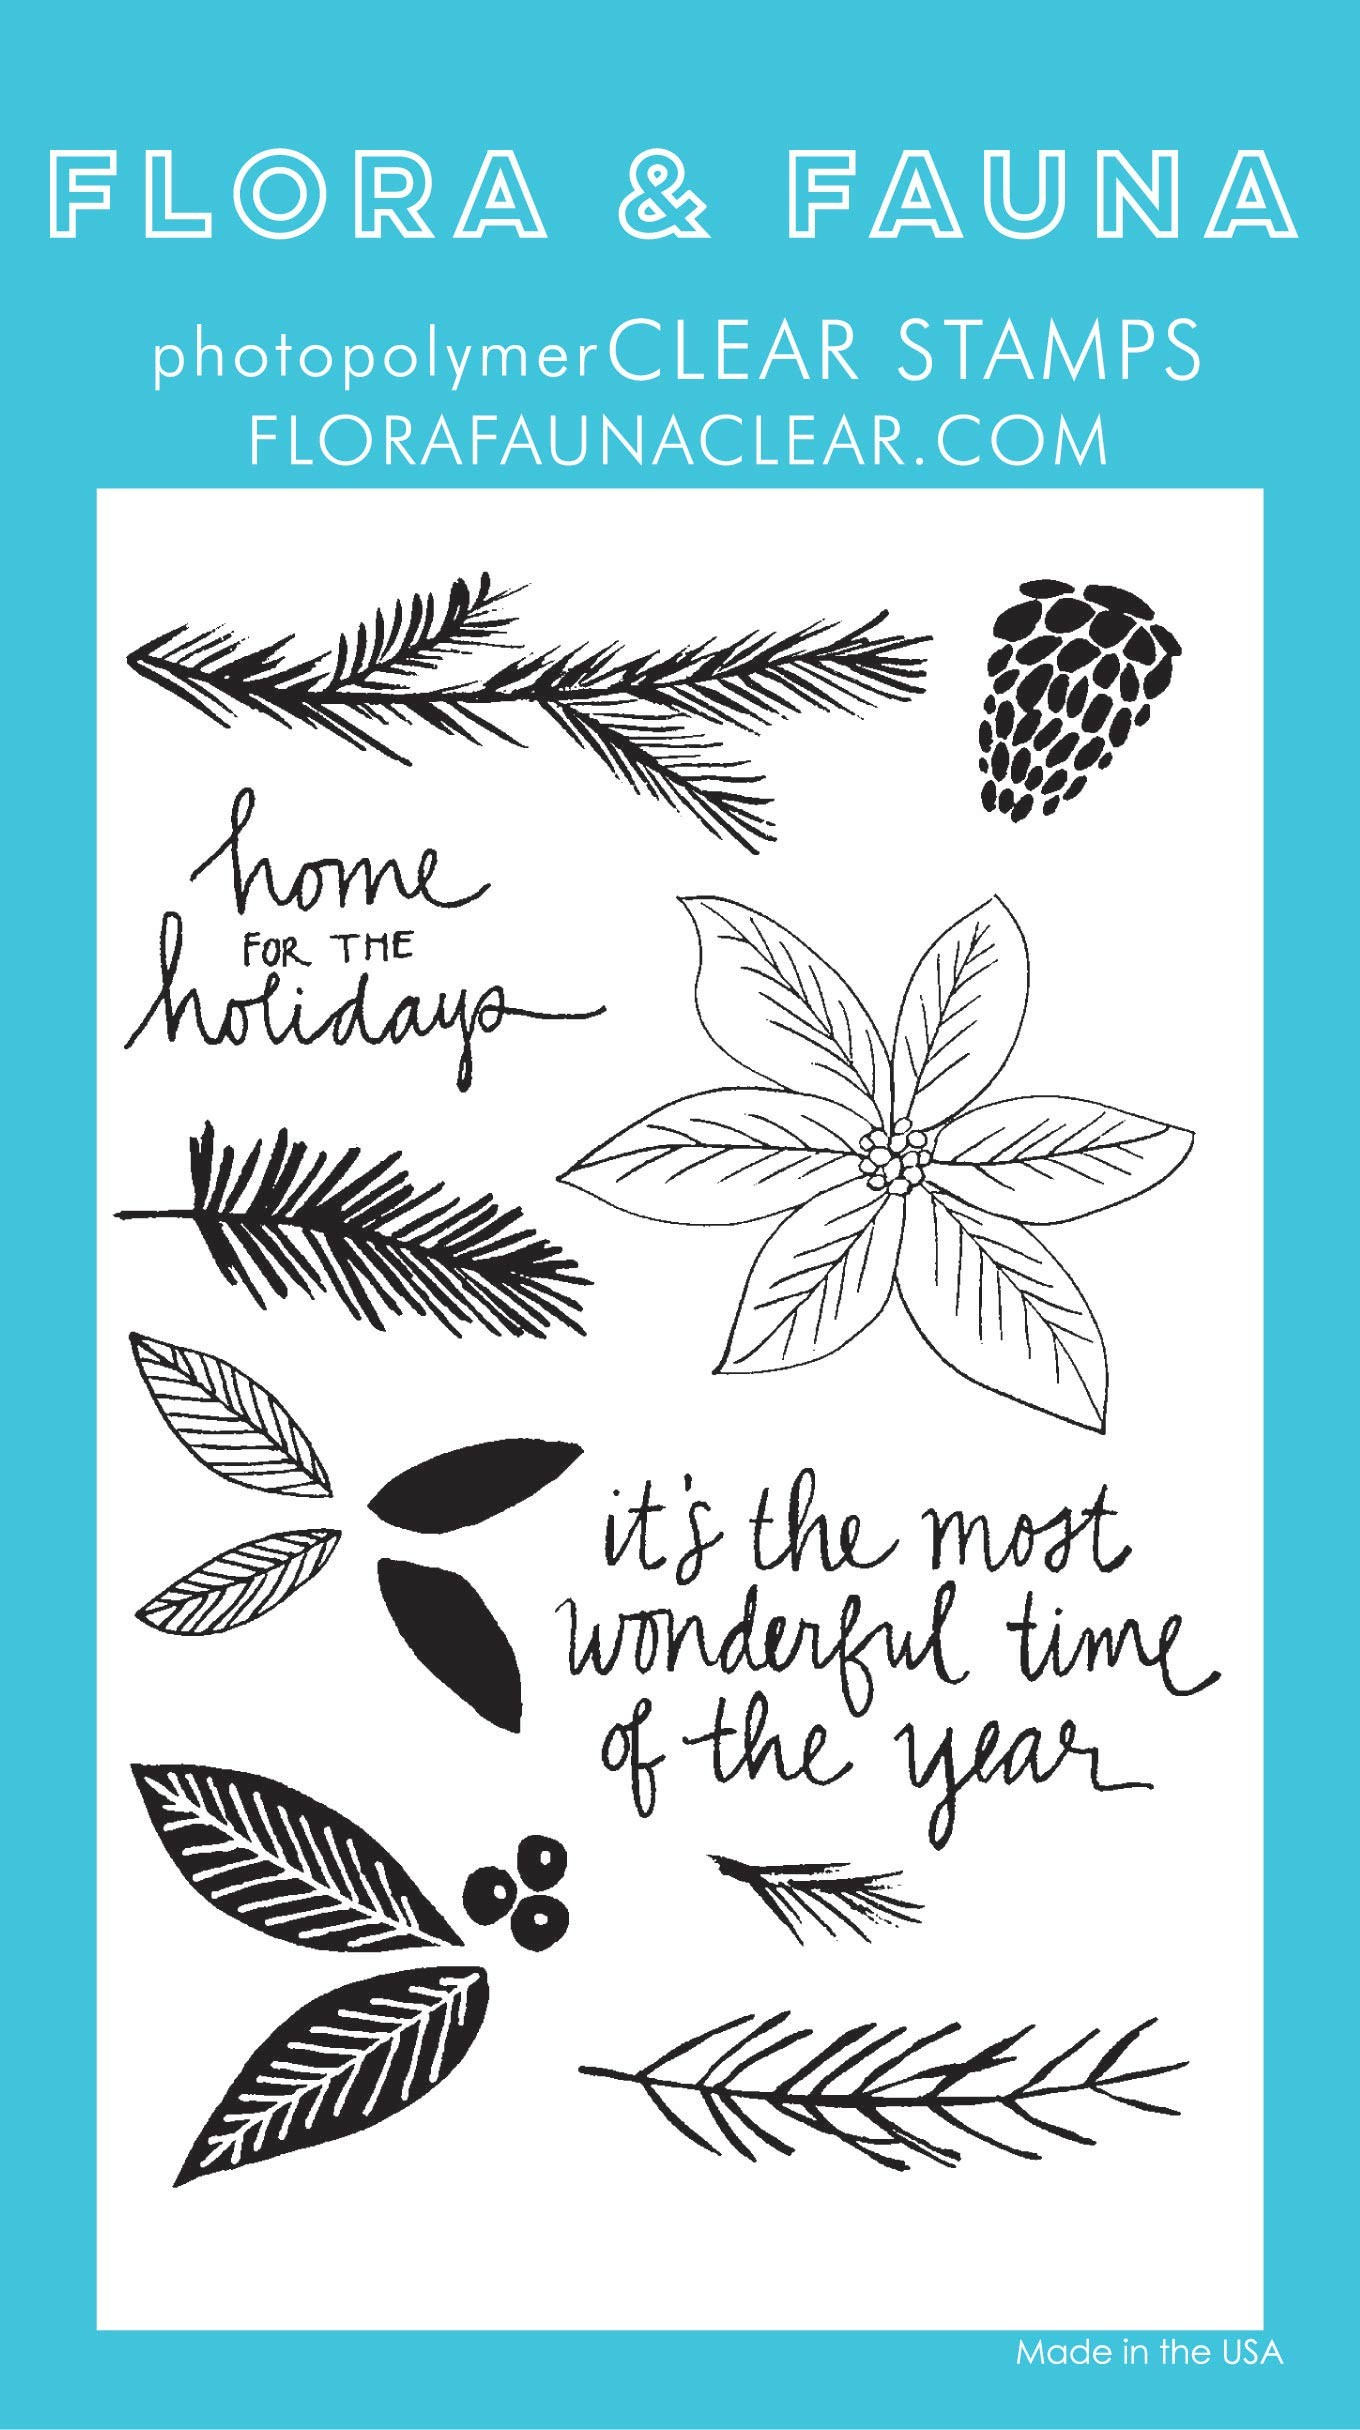 Flora & Fauna Poinsettia Watercolor Clear Stamp Set